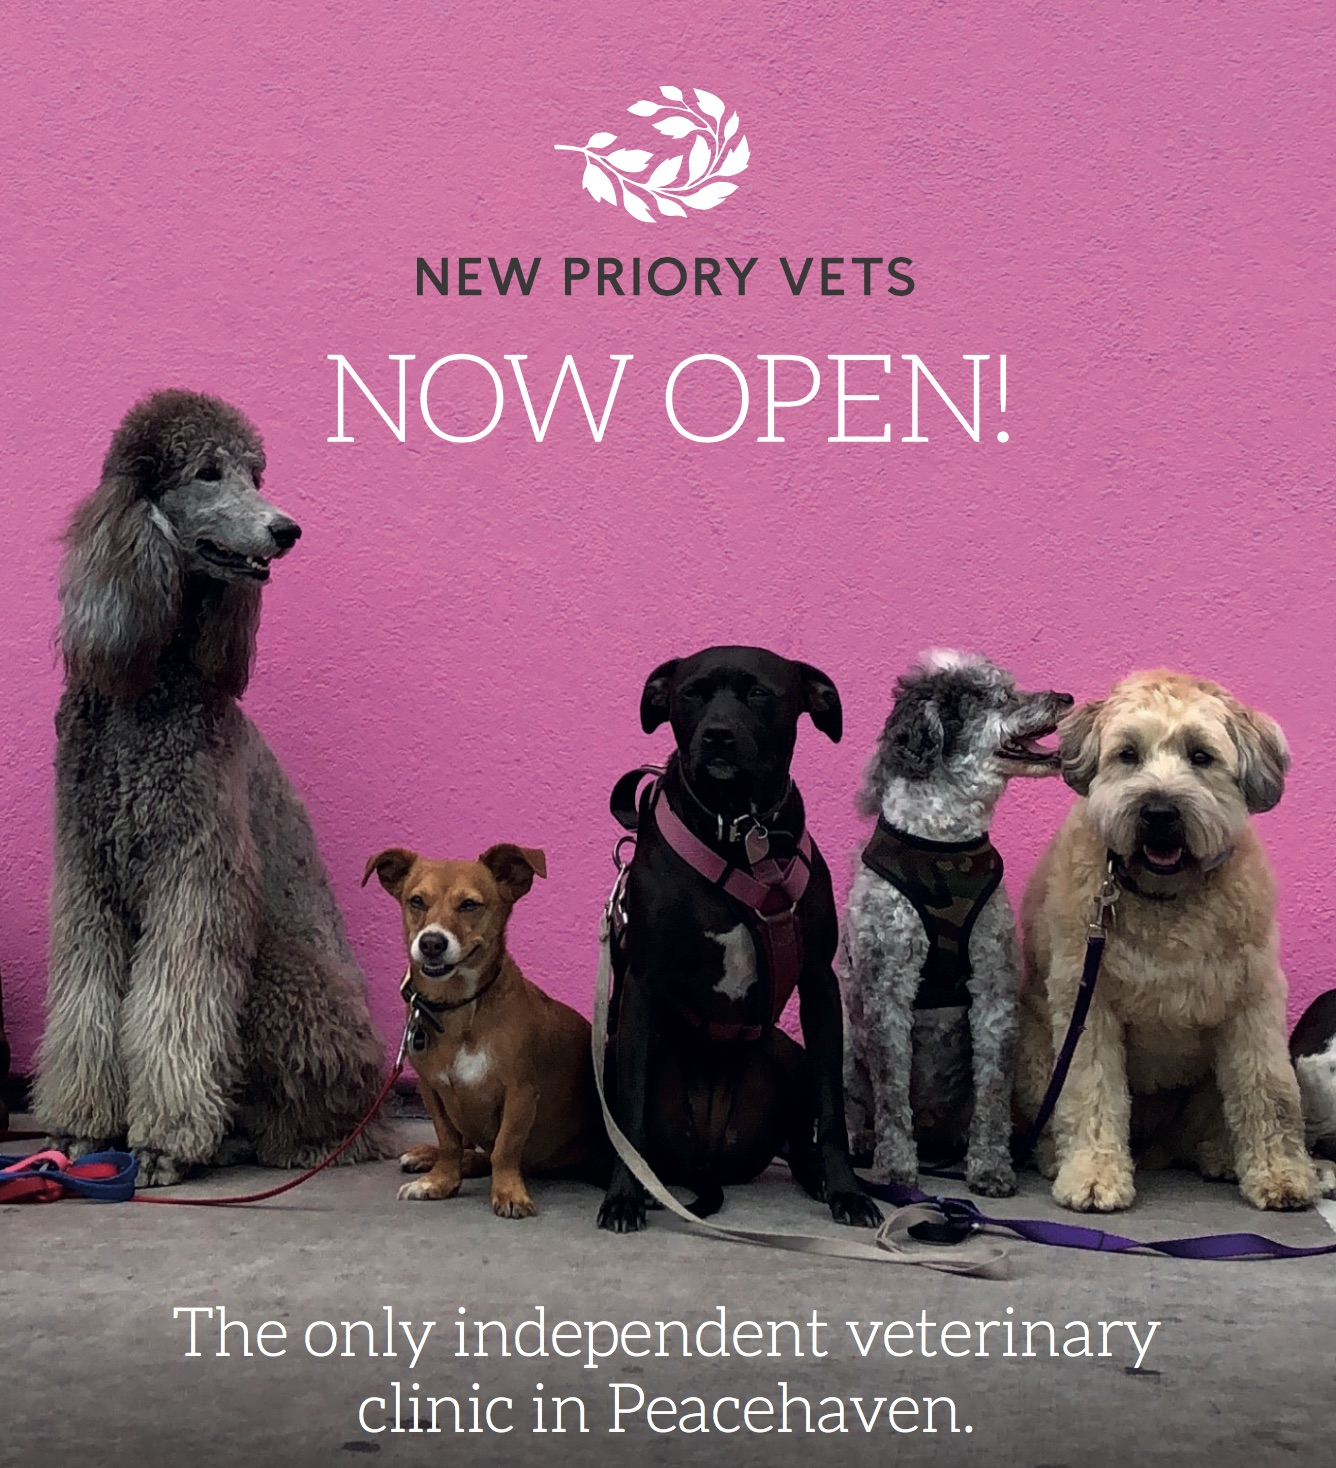 New Priory Vets - Peacehaven Clinic - Vet in Peacehaven, East Sussex